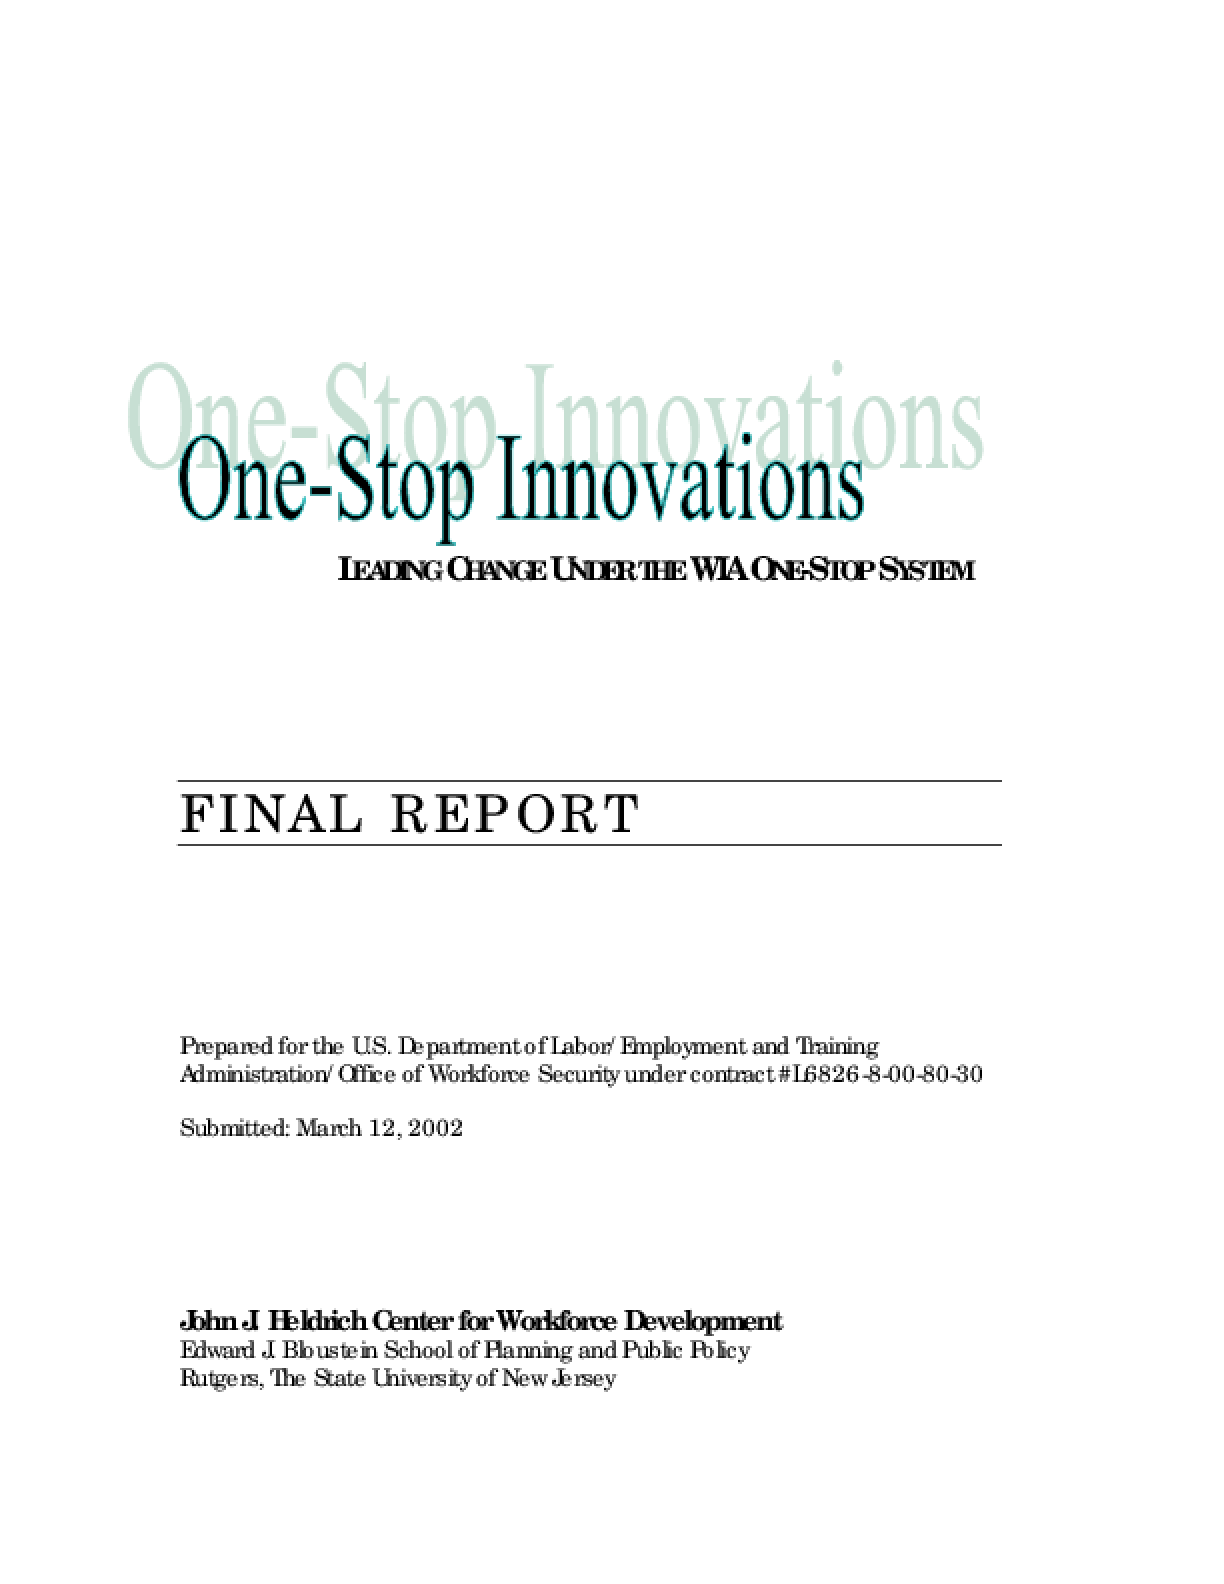 One-Stop Innovations: Leading Change Under the WIA One-Stop System Final Report